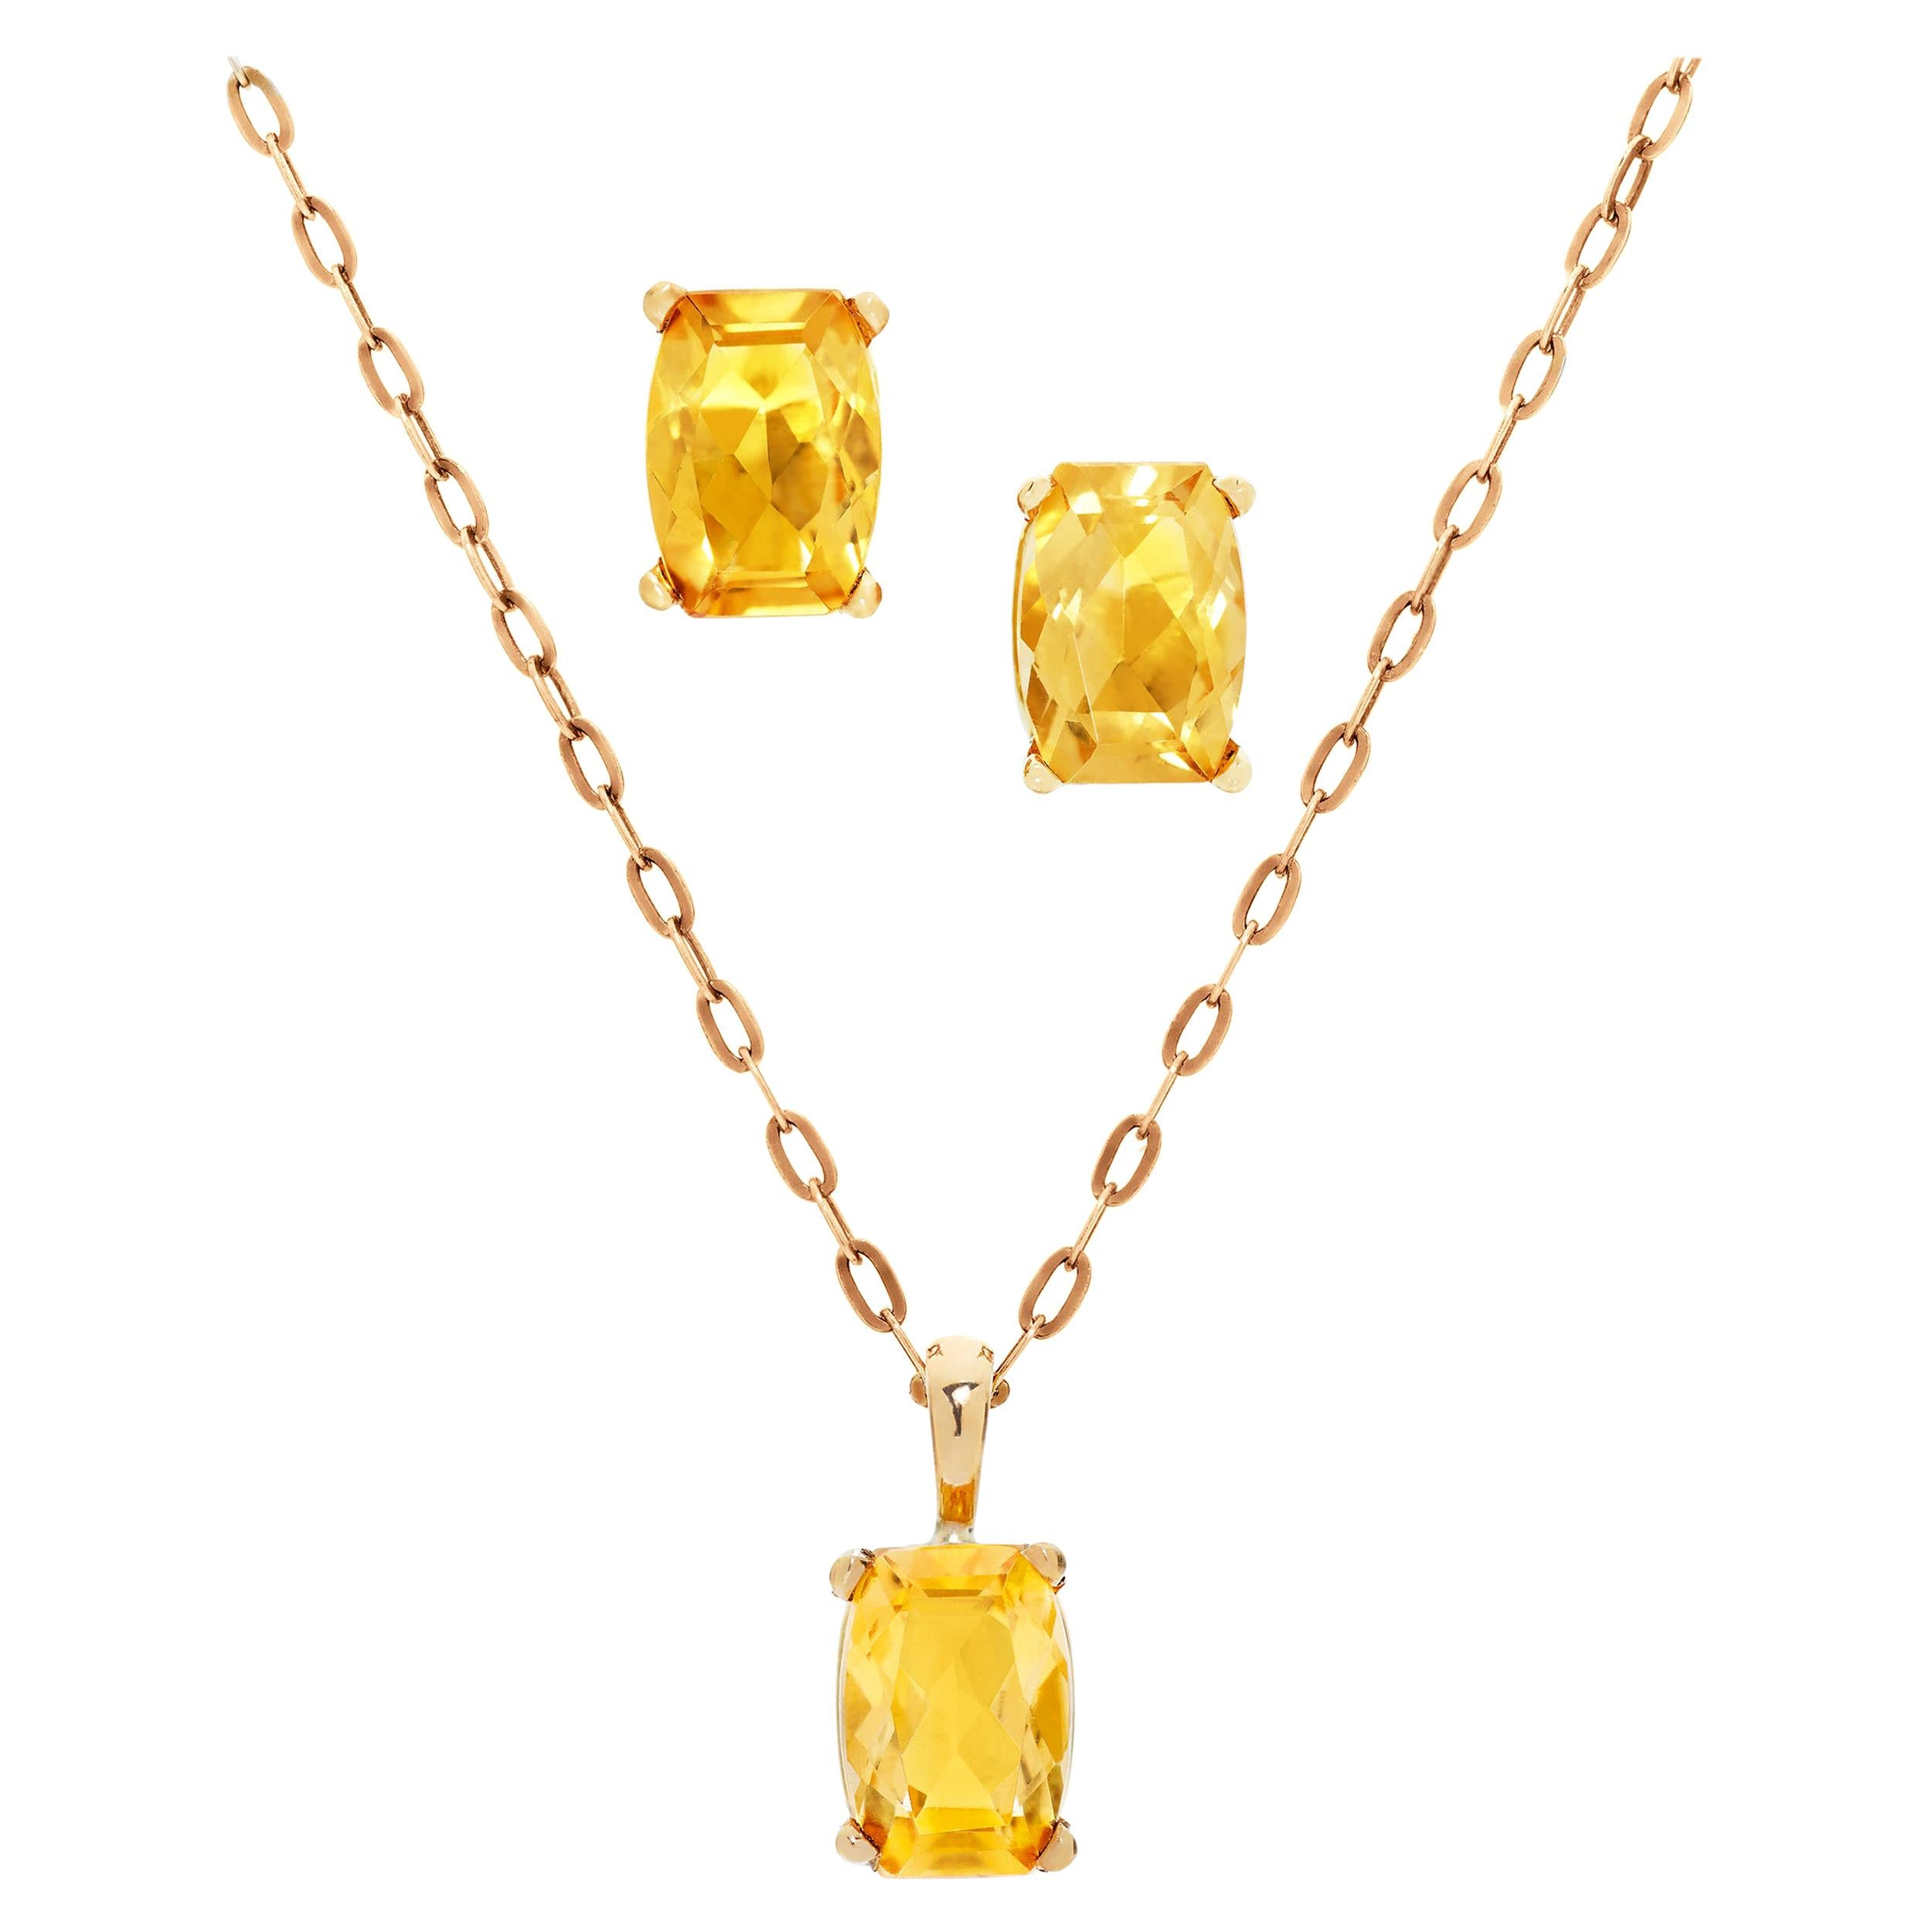 2.26 Carats Cushion Cut Citrine Necklace and Earrings in 18 Karat Yellow Gold